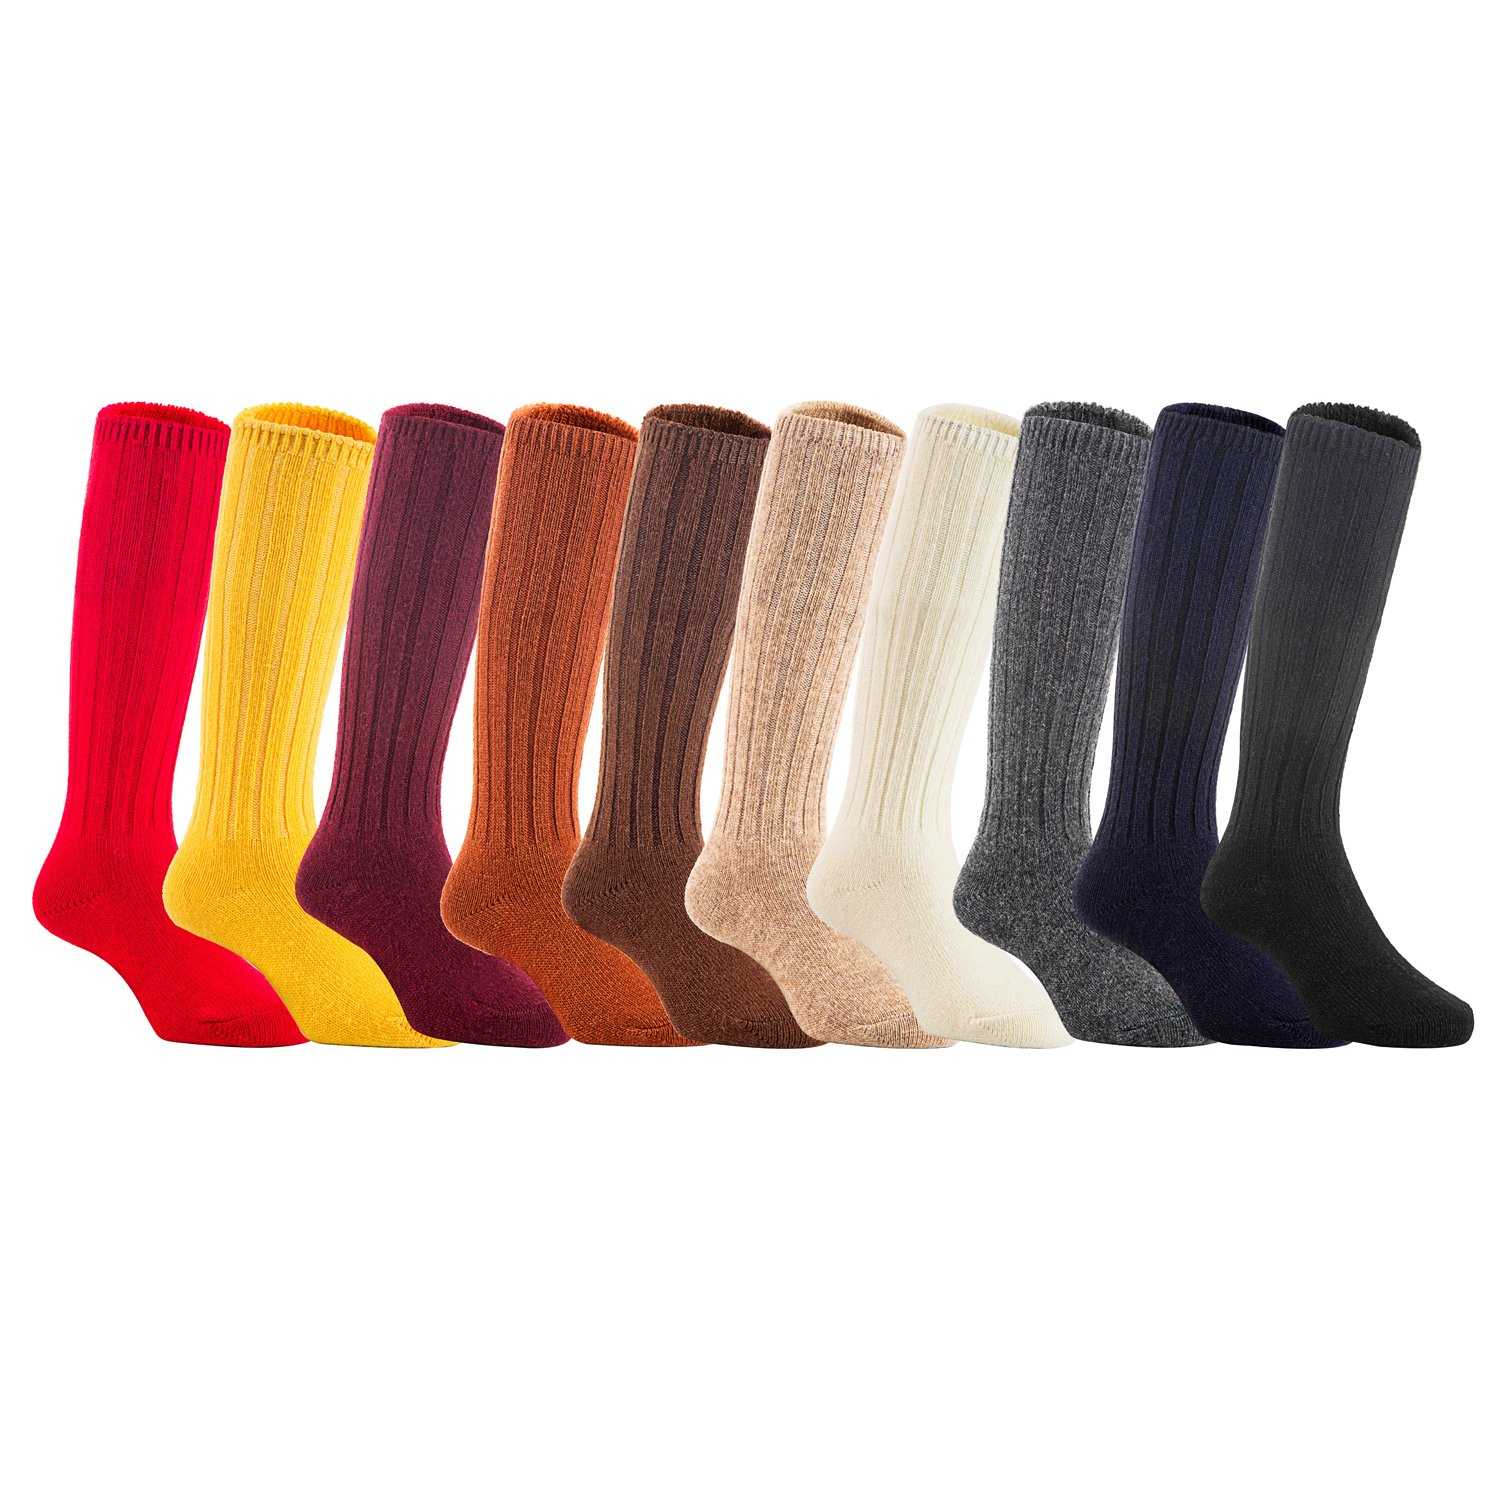 Lian LifeStyle Unisex Baby Children 4 Pairs Knee High Wool Blend Boot Socks 3 Sizes 14 Colors